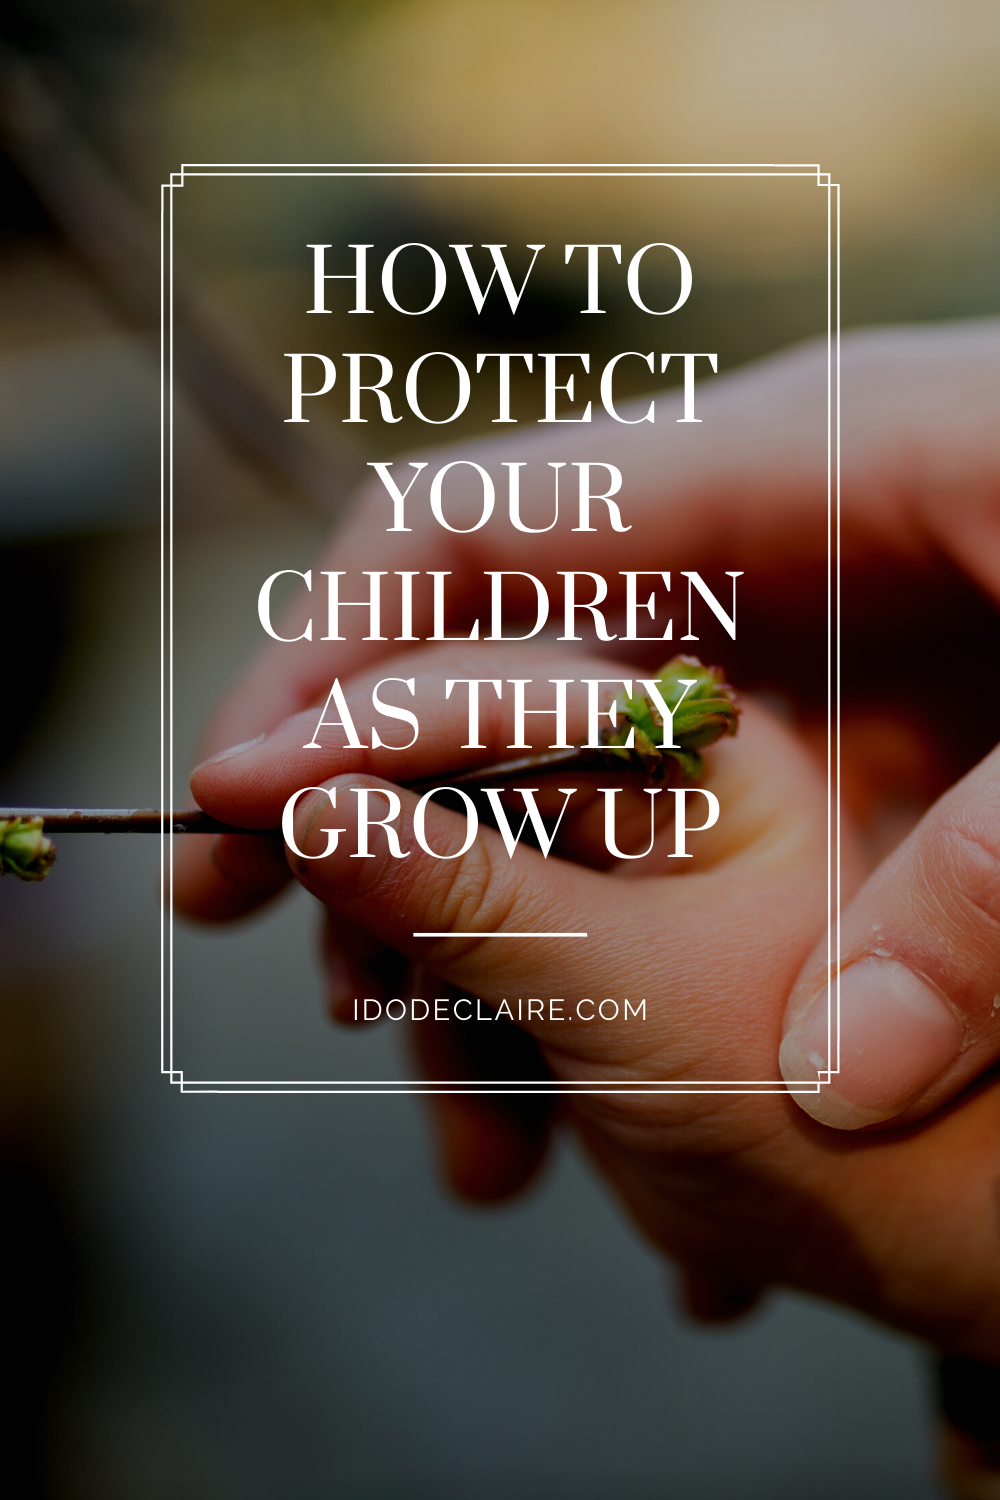 How to Protect Your Children as They Grow Up